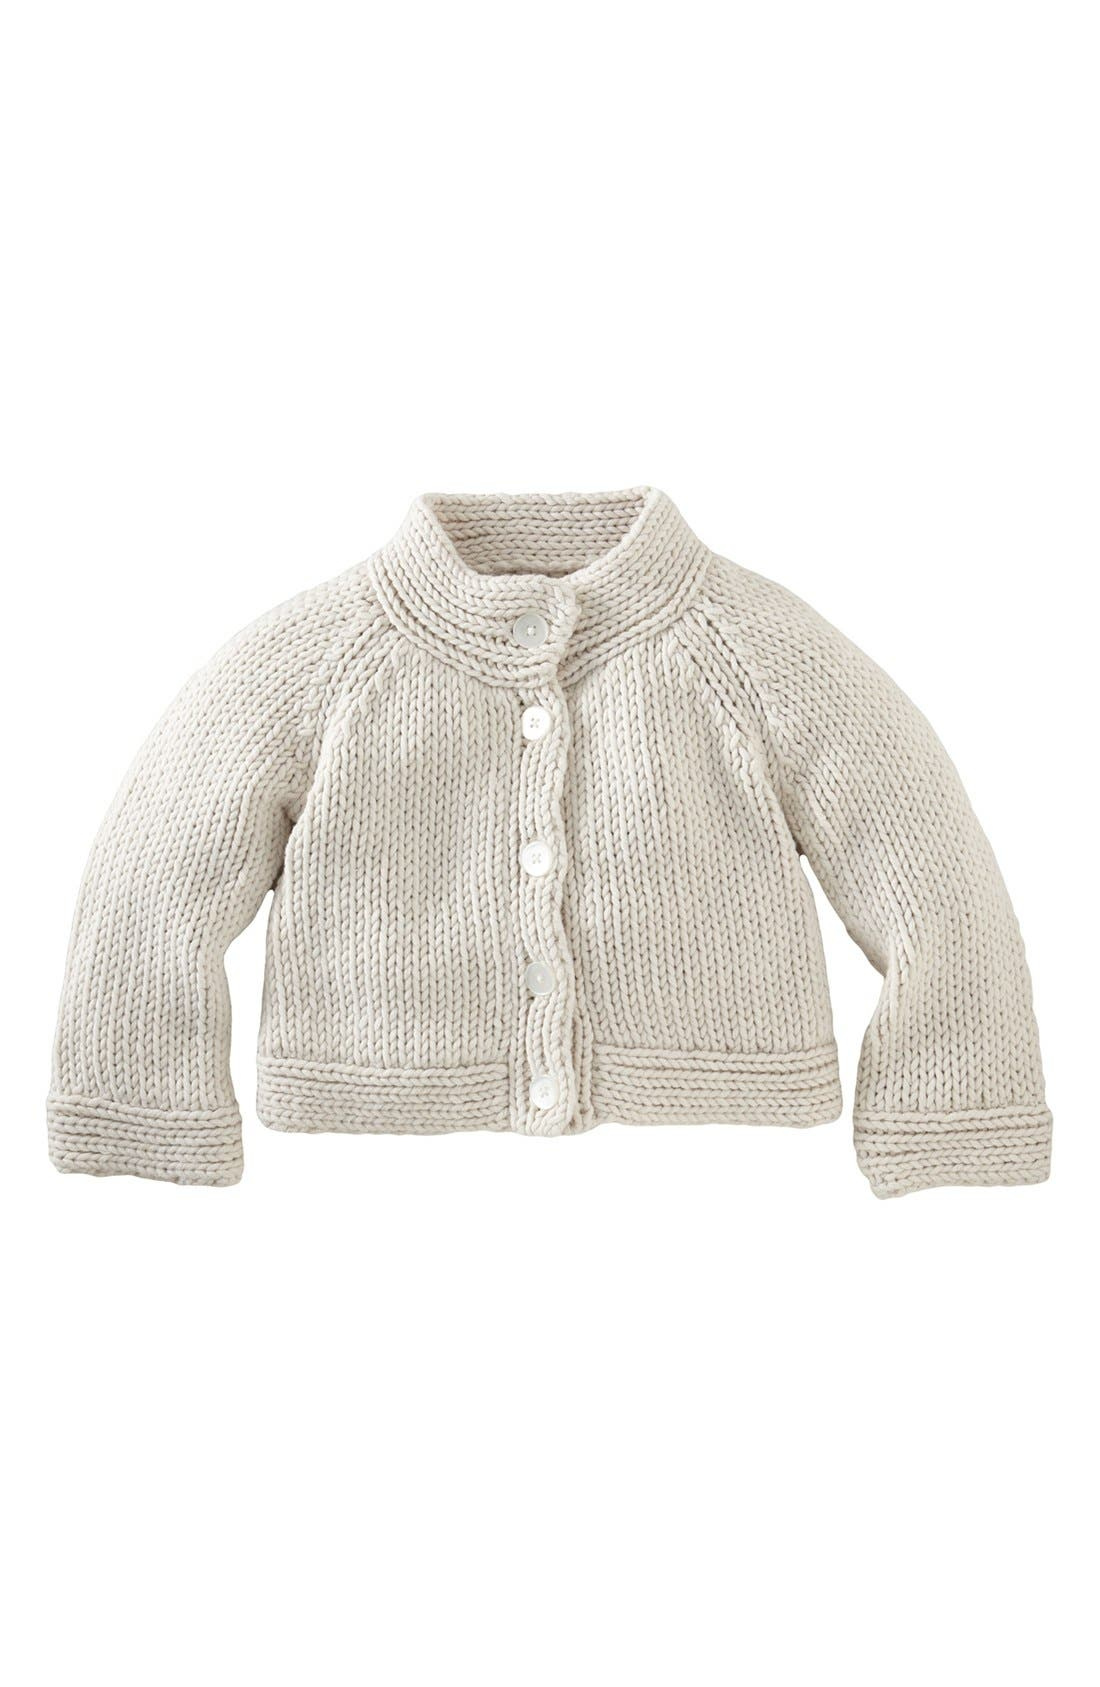 Main Image - Tea Collection Cozy Knit Sweater (Little Girls & Big Girls)